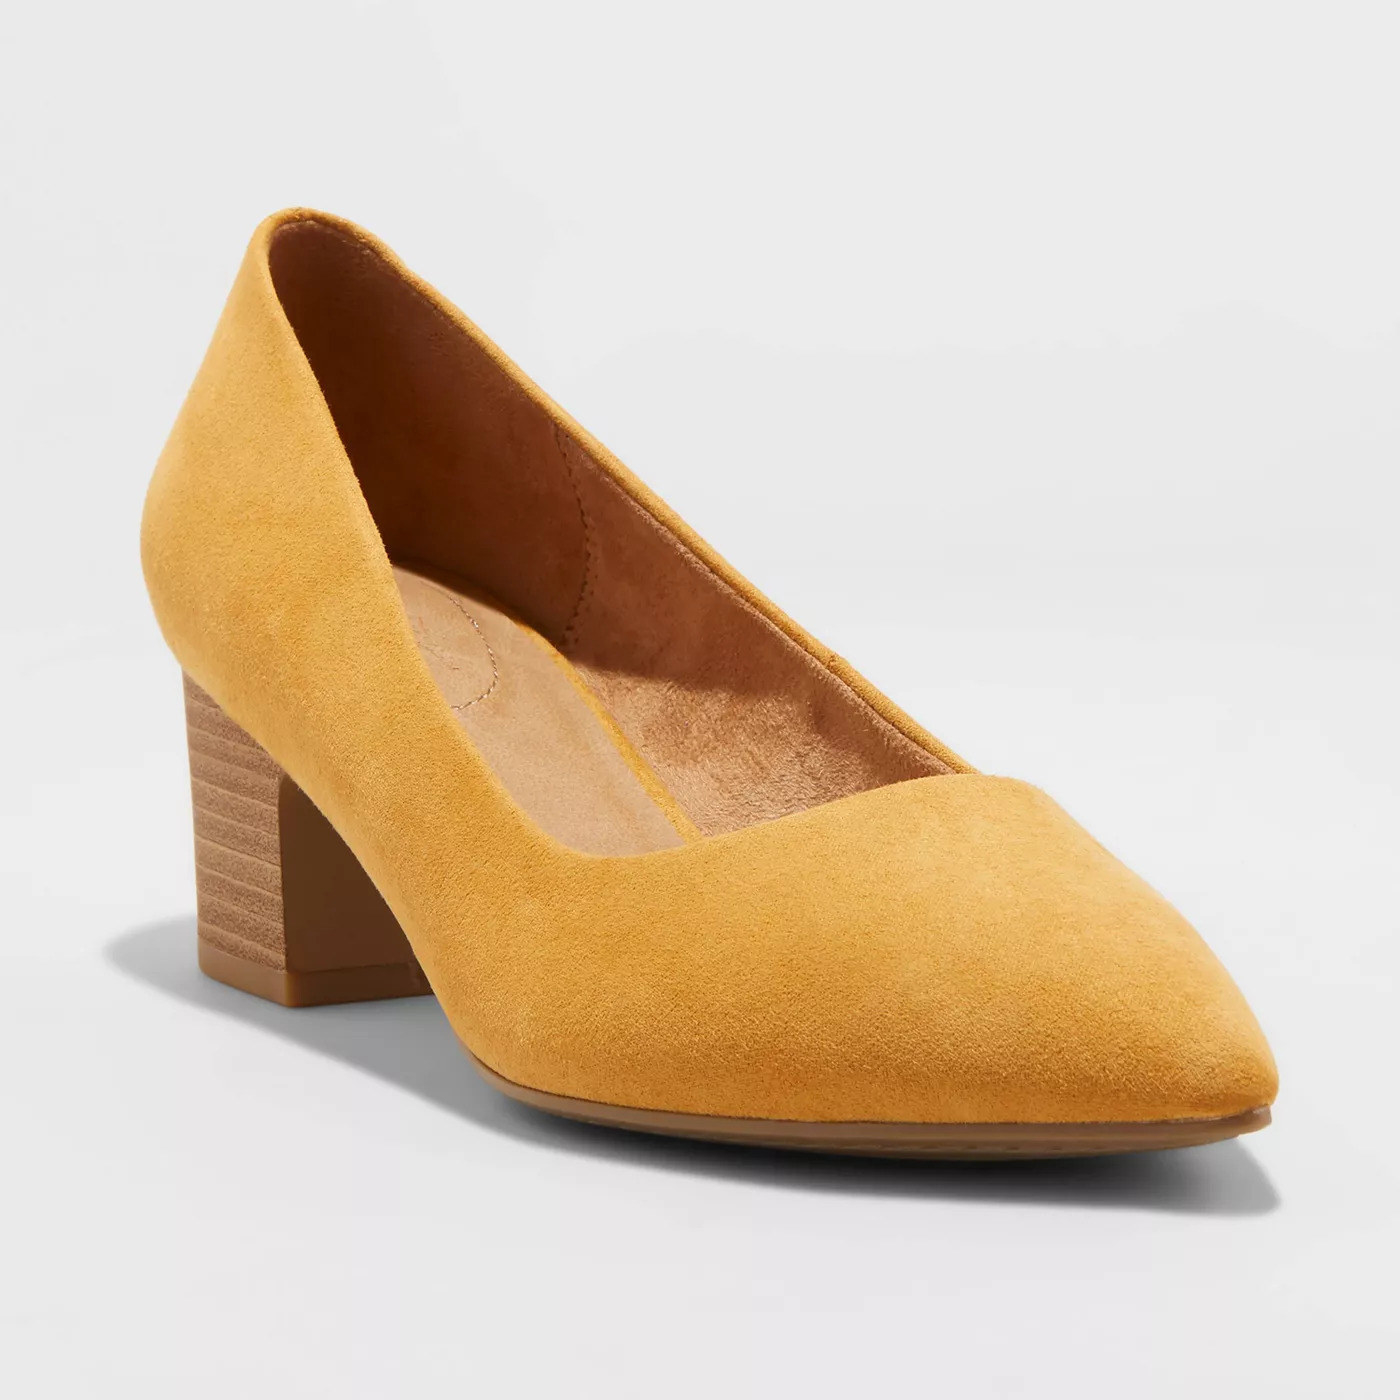 a mustard suede pointed pump with a brown block heel